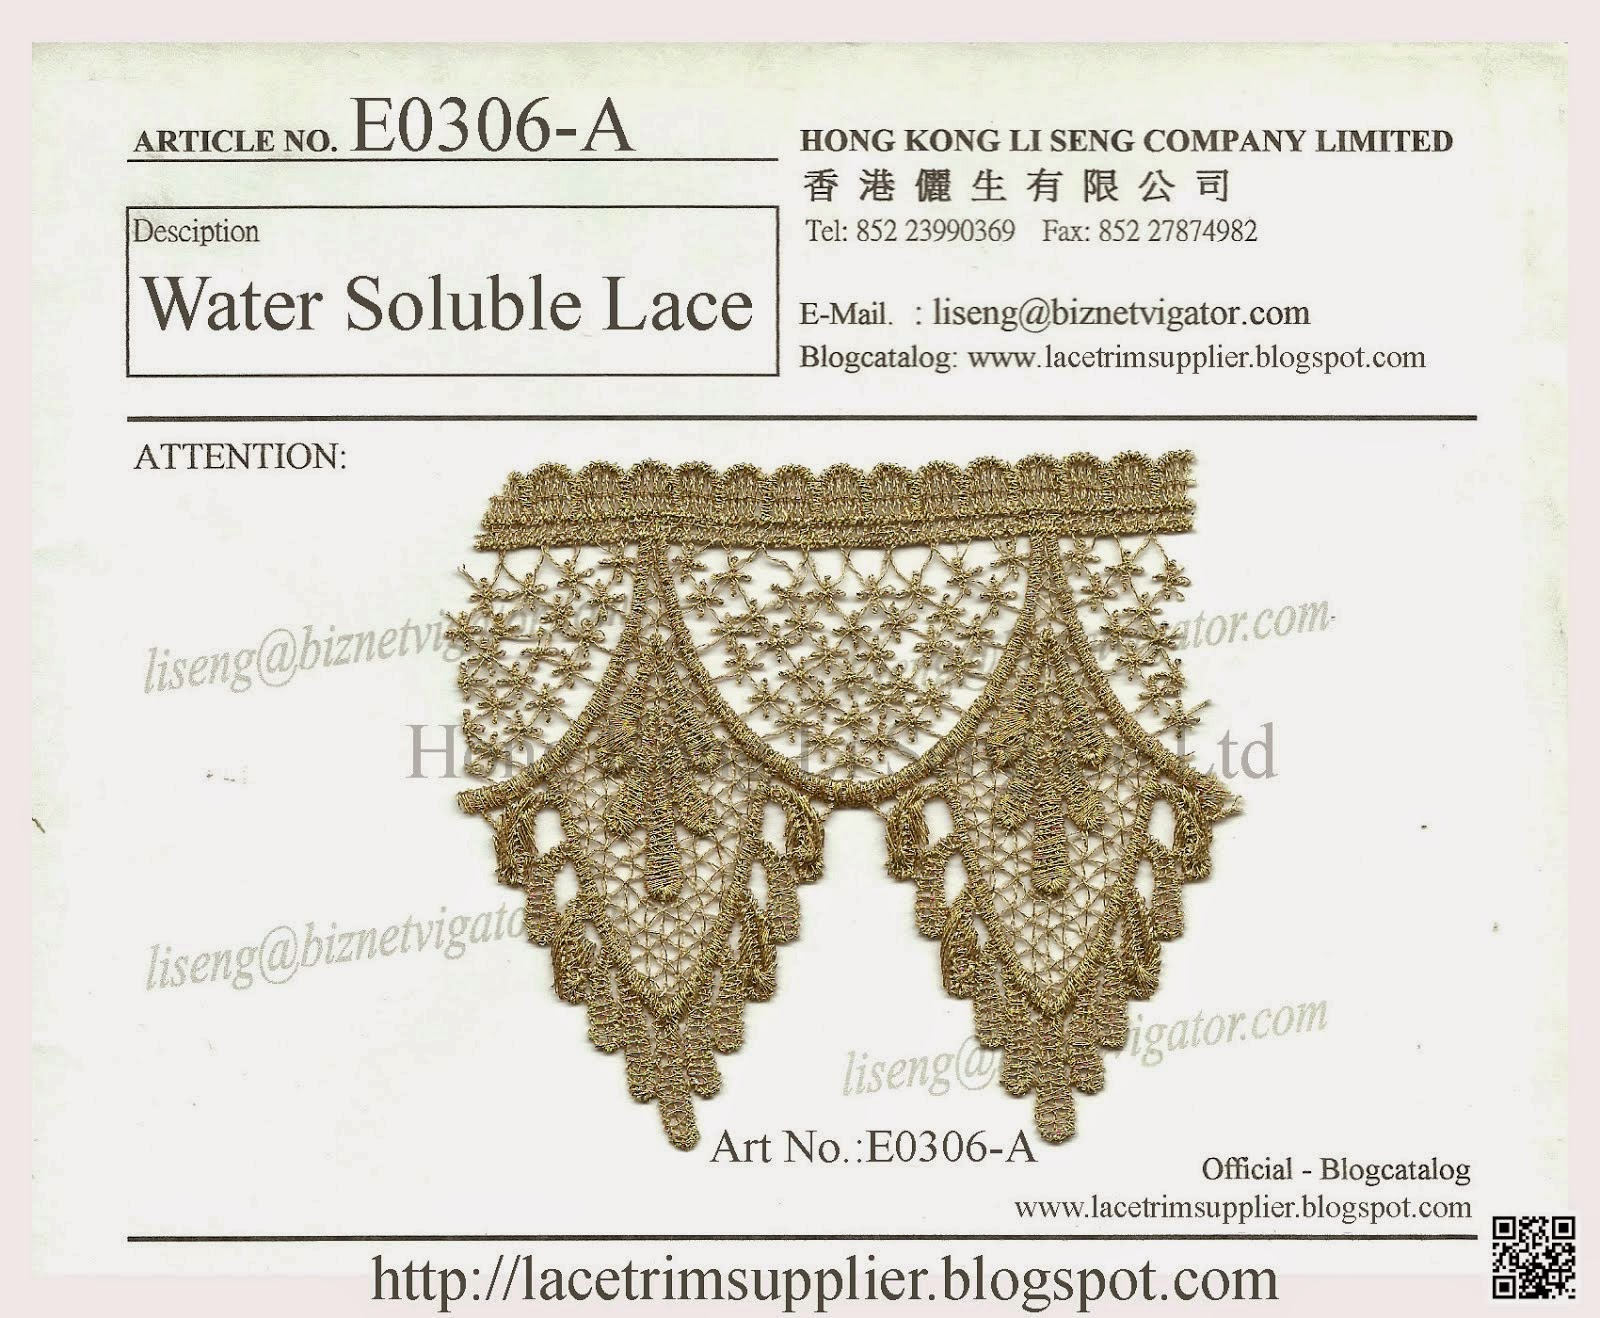 Golden Lurex Embroidery Water Soluble Lace Manufacturer